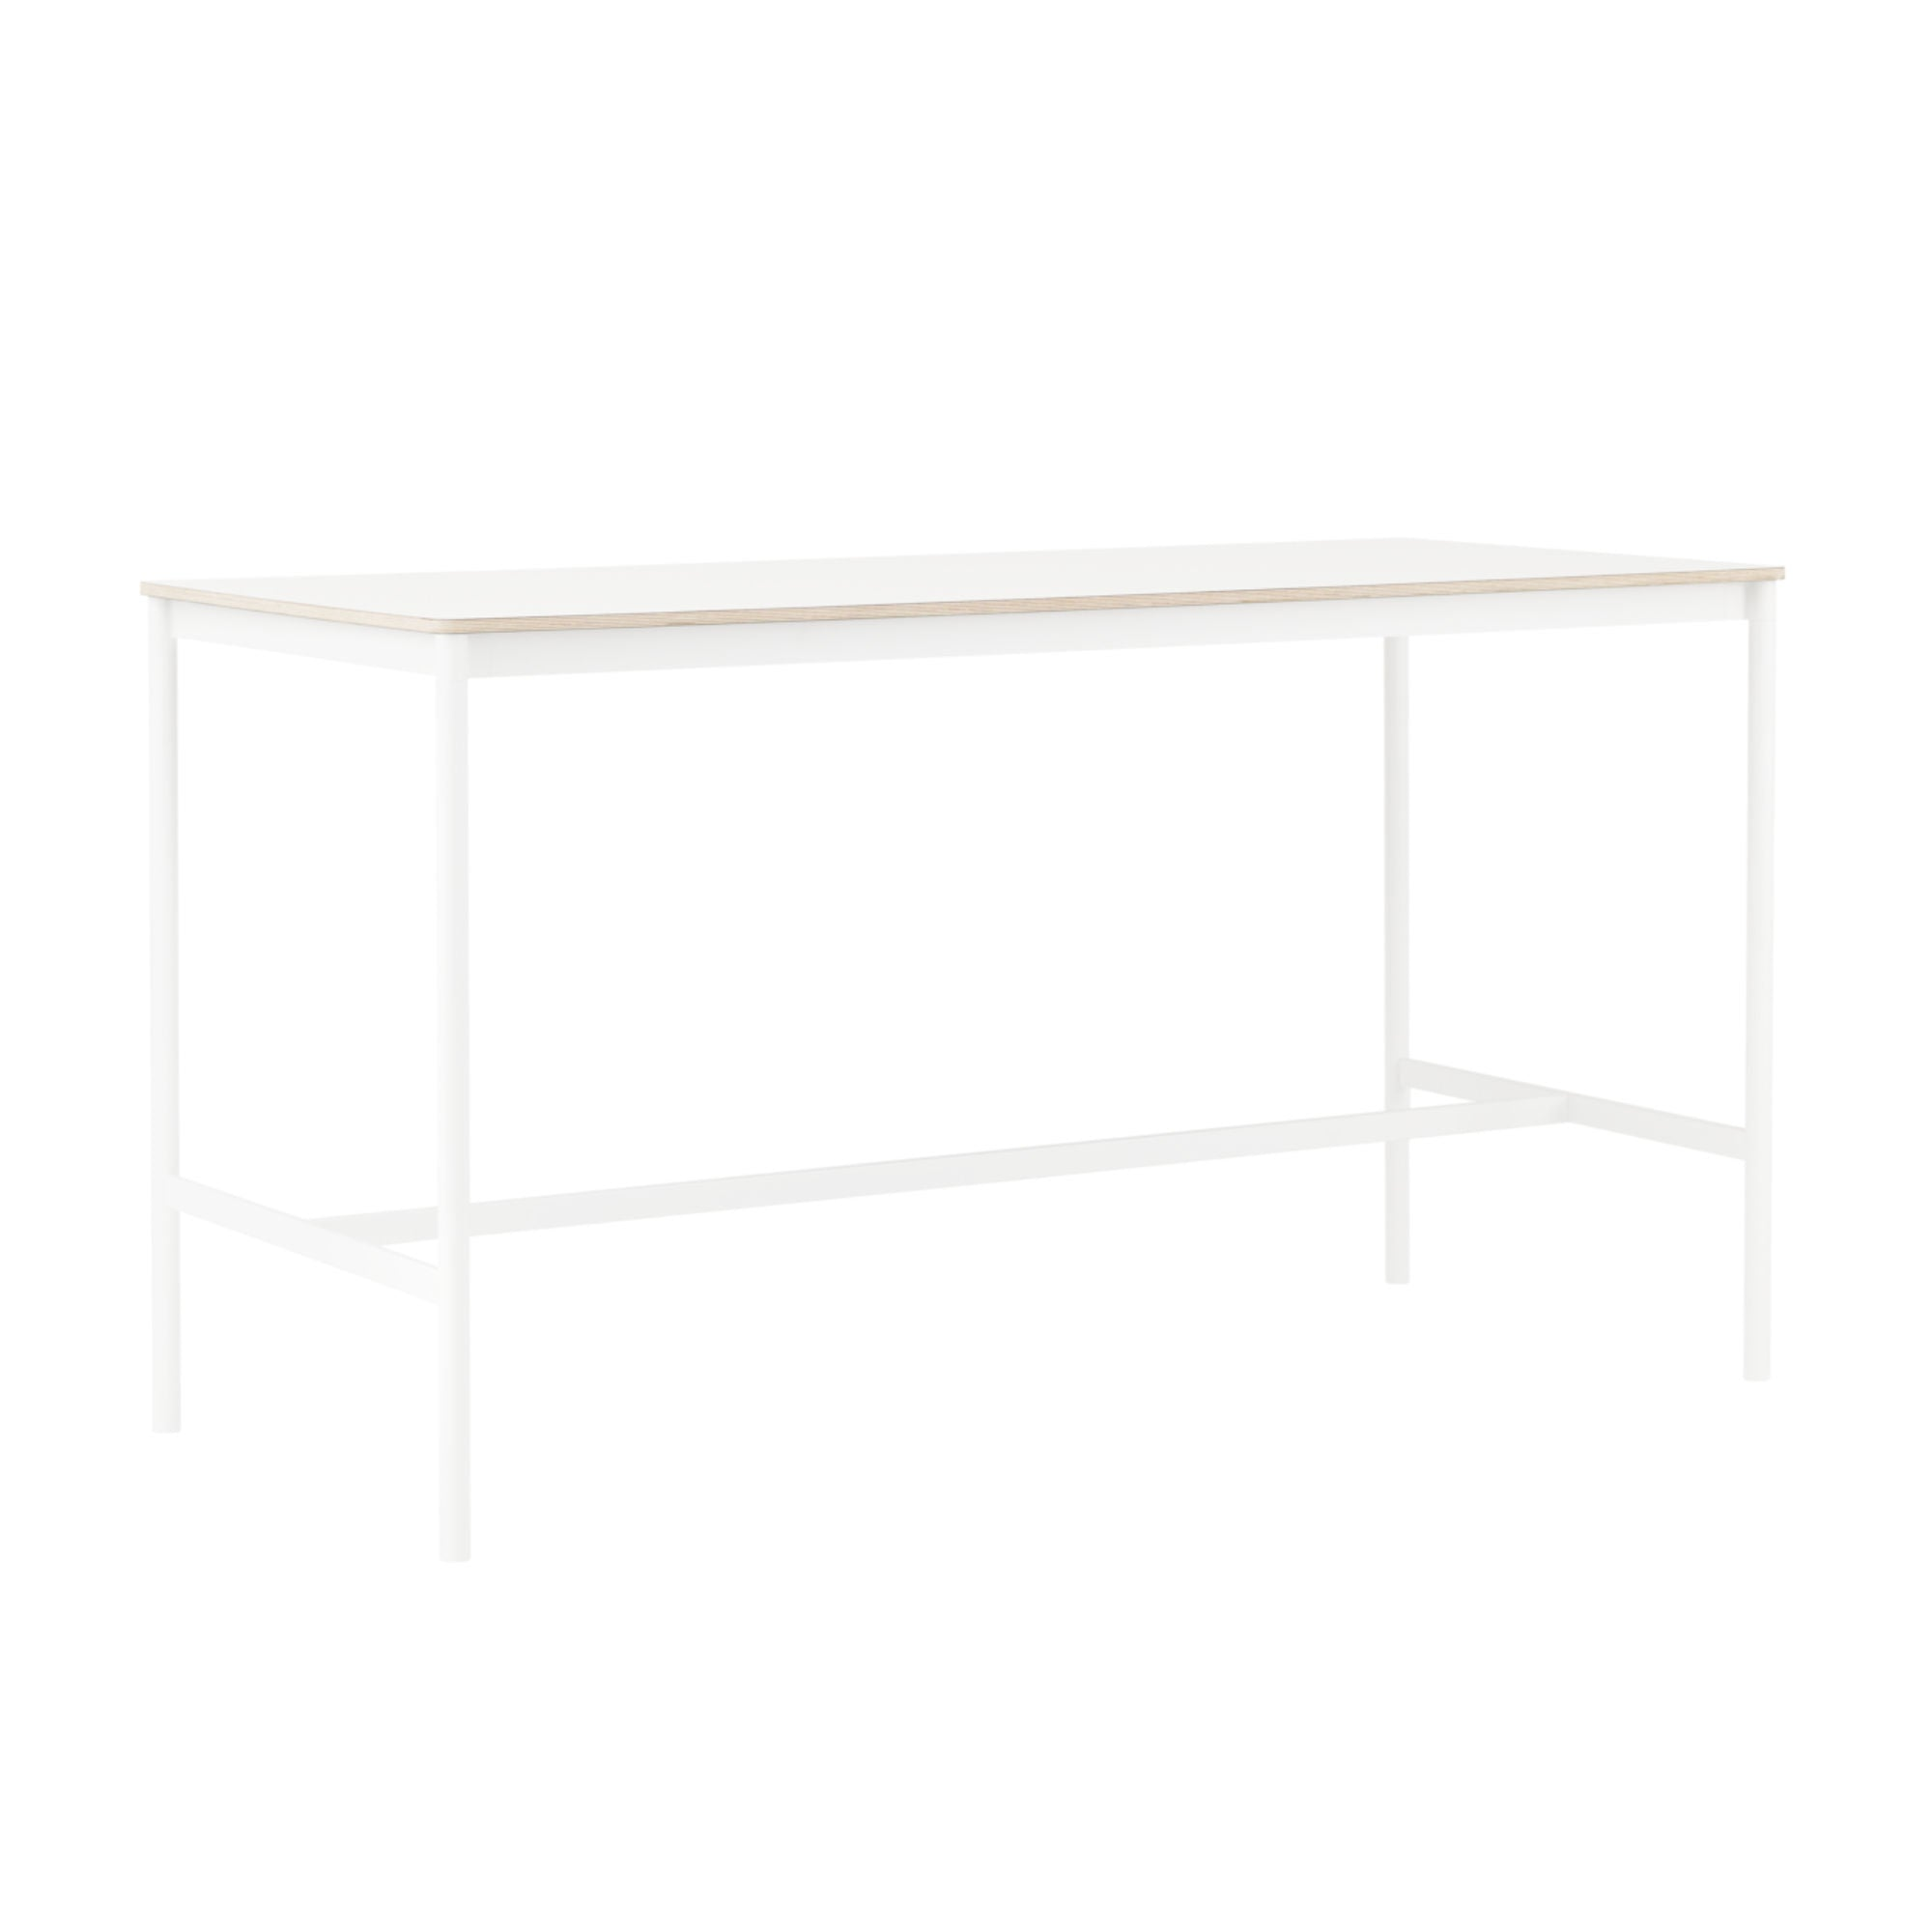 Muuto Base High Table 190x85 h:105cm , White Laminate/Plywood/White